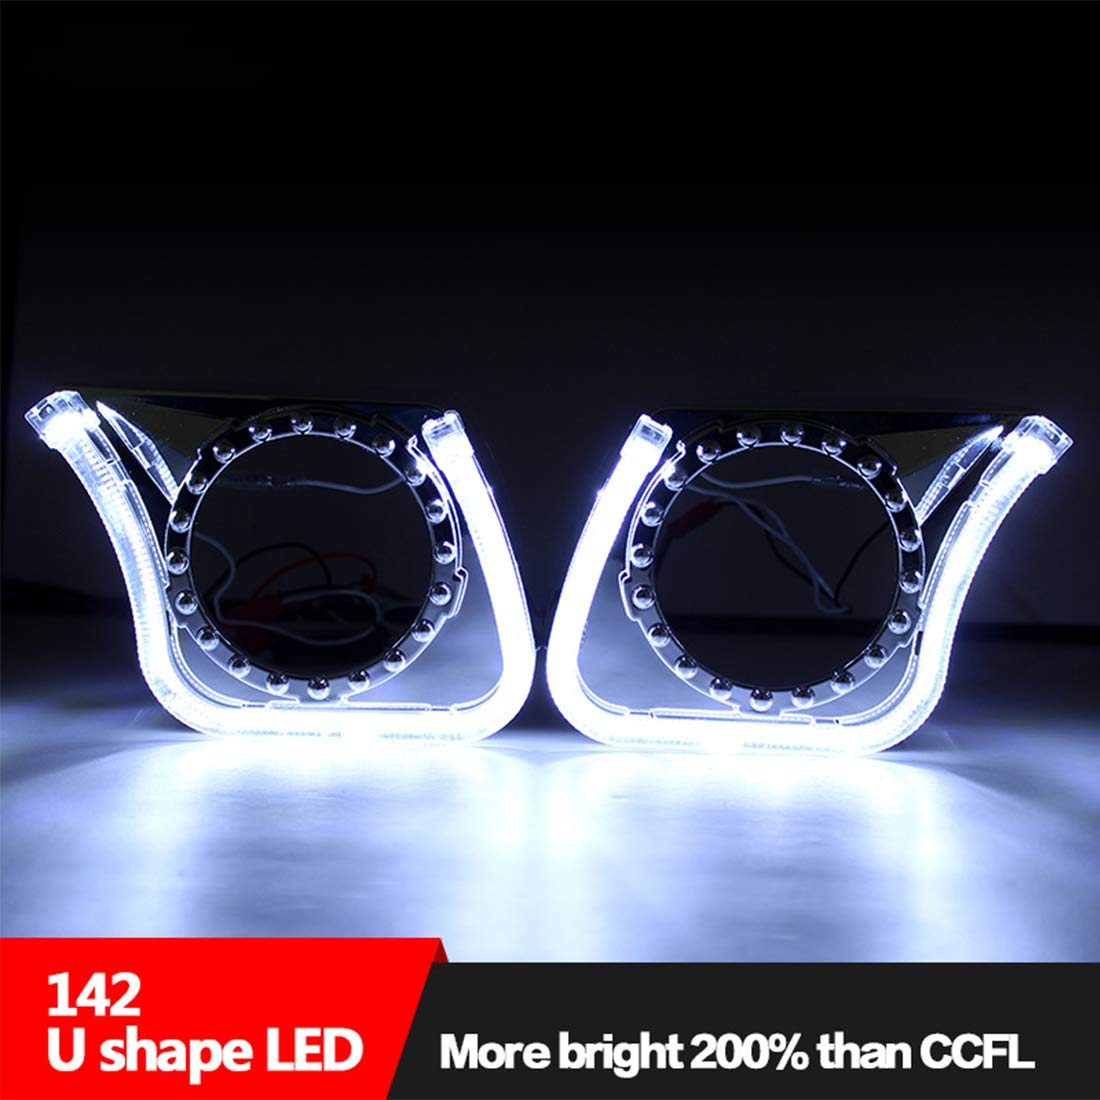 Fari Angel Eyes ZHUOYUE 2Pcs 3.0Inch Universal U Shape FLAT LED Angel Eyes Devil Eyes Bi Xenon Proiettori U Type Headlight